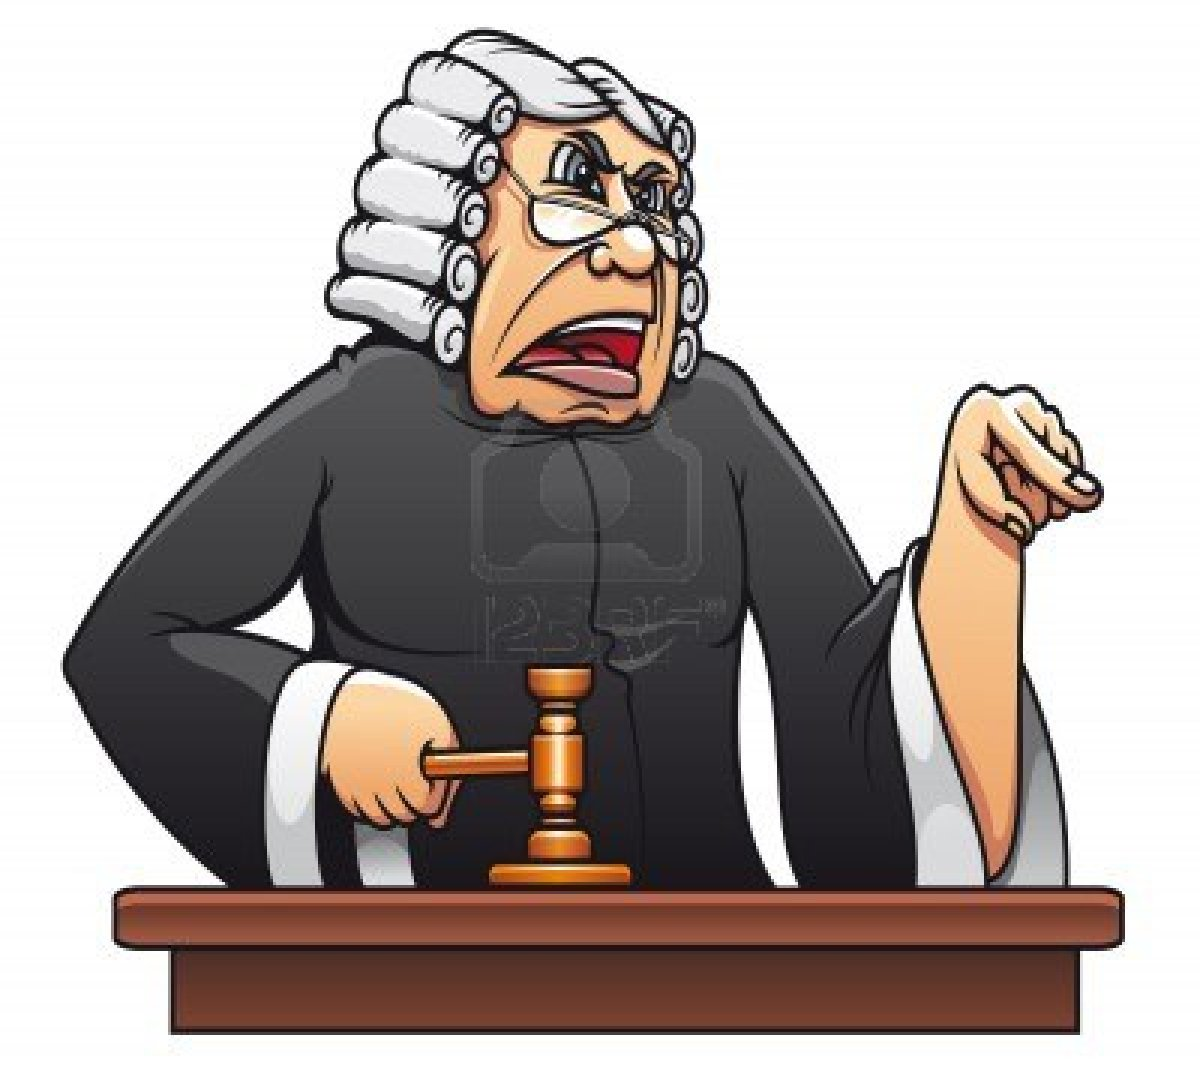 10859198 Judge With Gavel For Law Concept Design In Cartoon Style